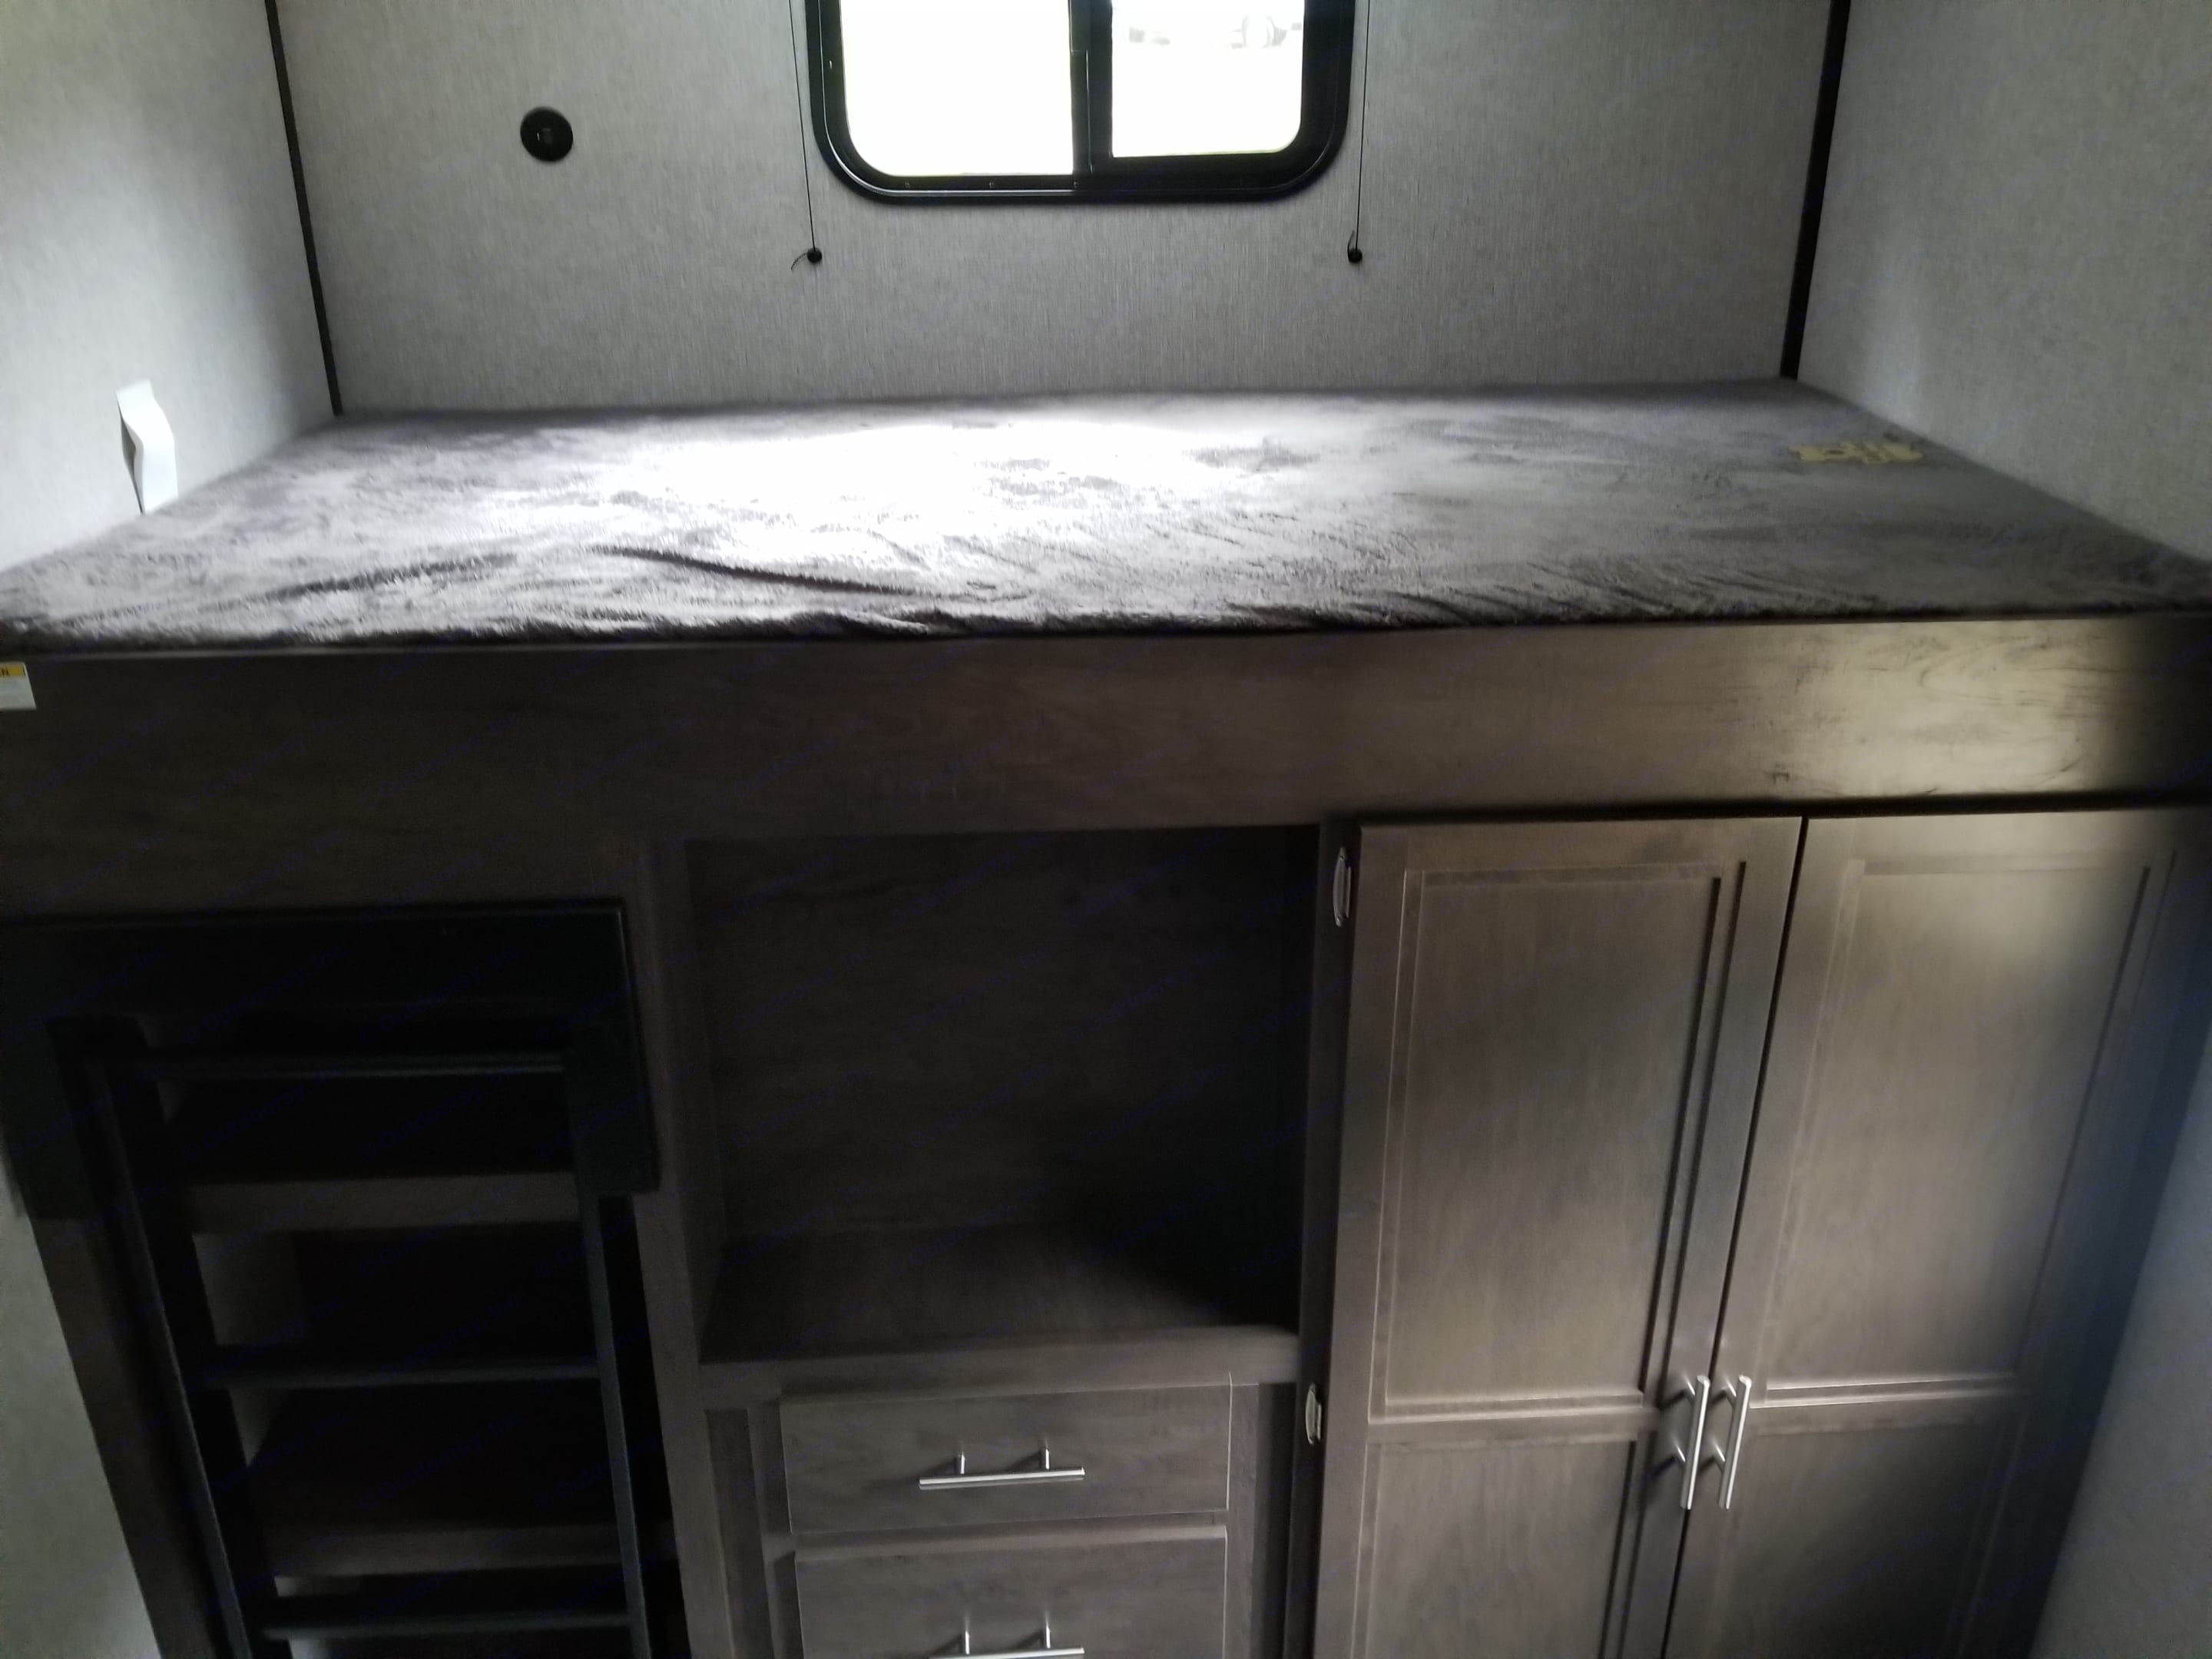 Bed and cabinets in back bedroom. Coleman Coleman Lantern 2020